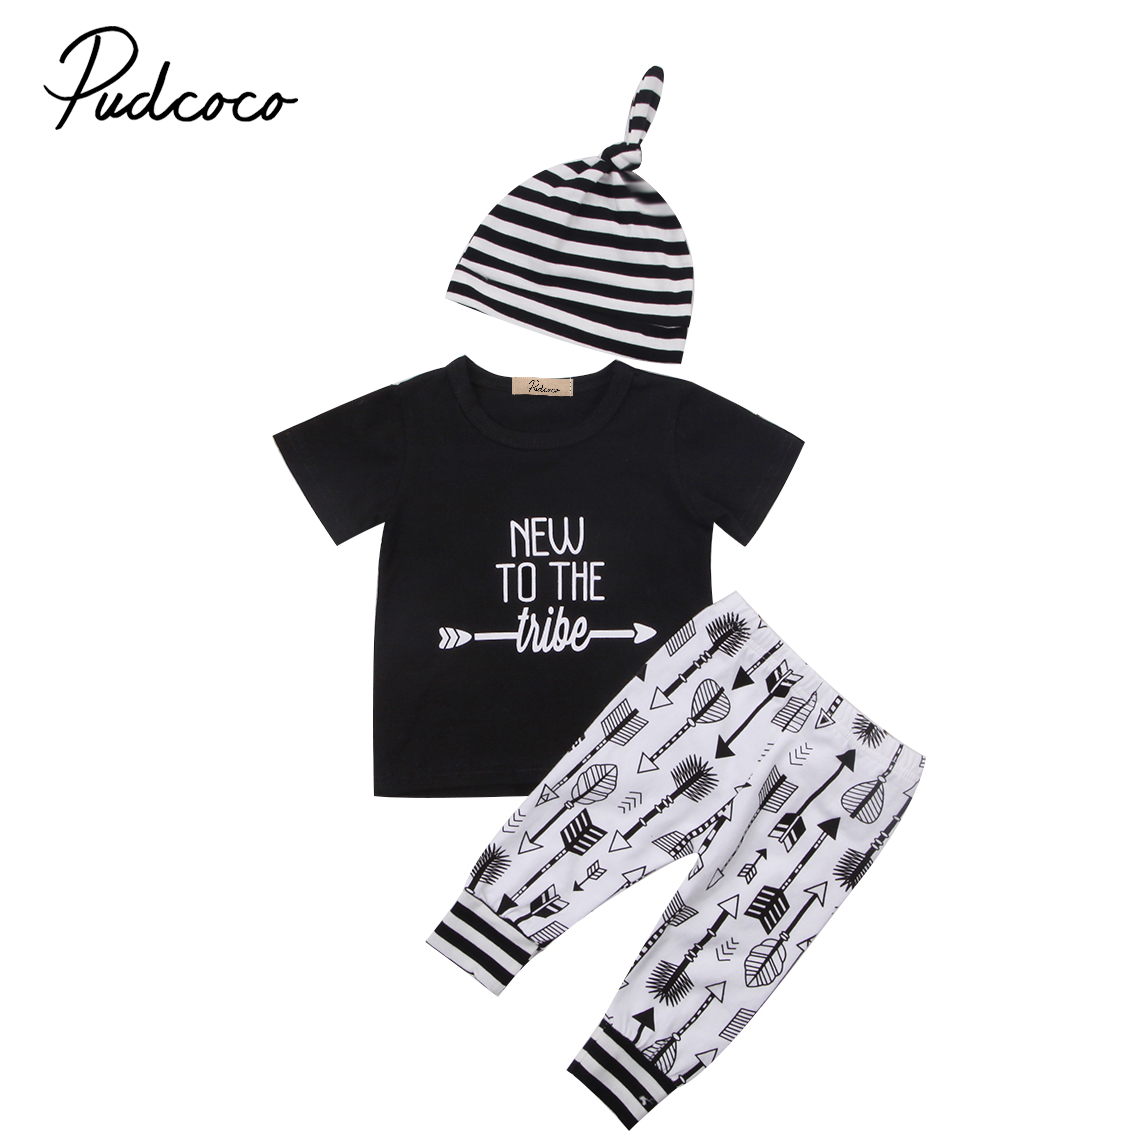 Baby Clothing Newborn Infant Baby Boy Girl Short sleeve Tops long Pants Hat 3Pcs Baby Cotton Outfit Clothes Set 0-18M